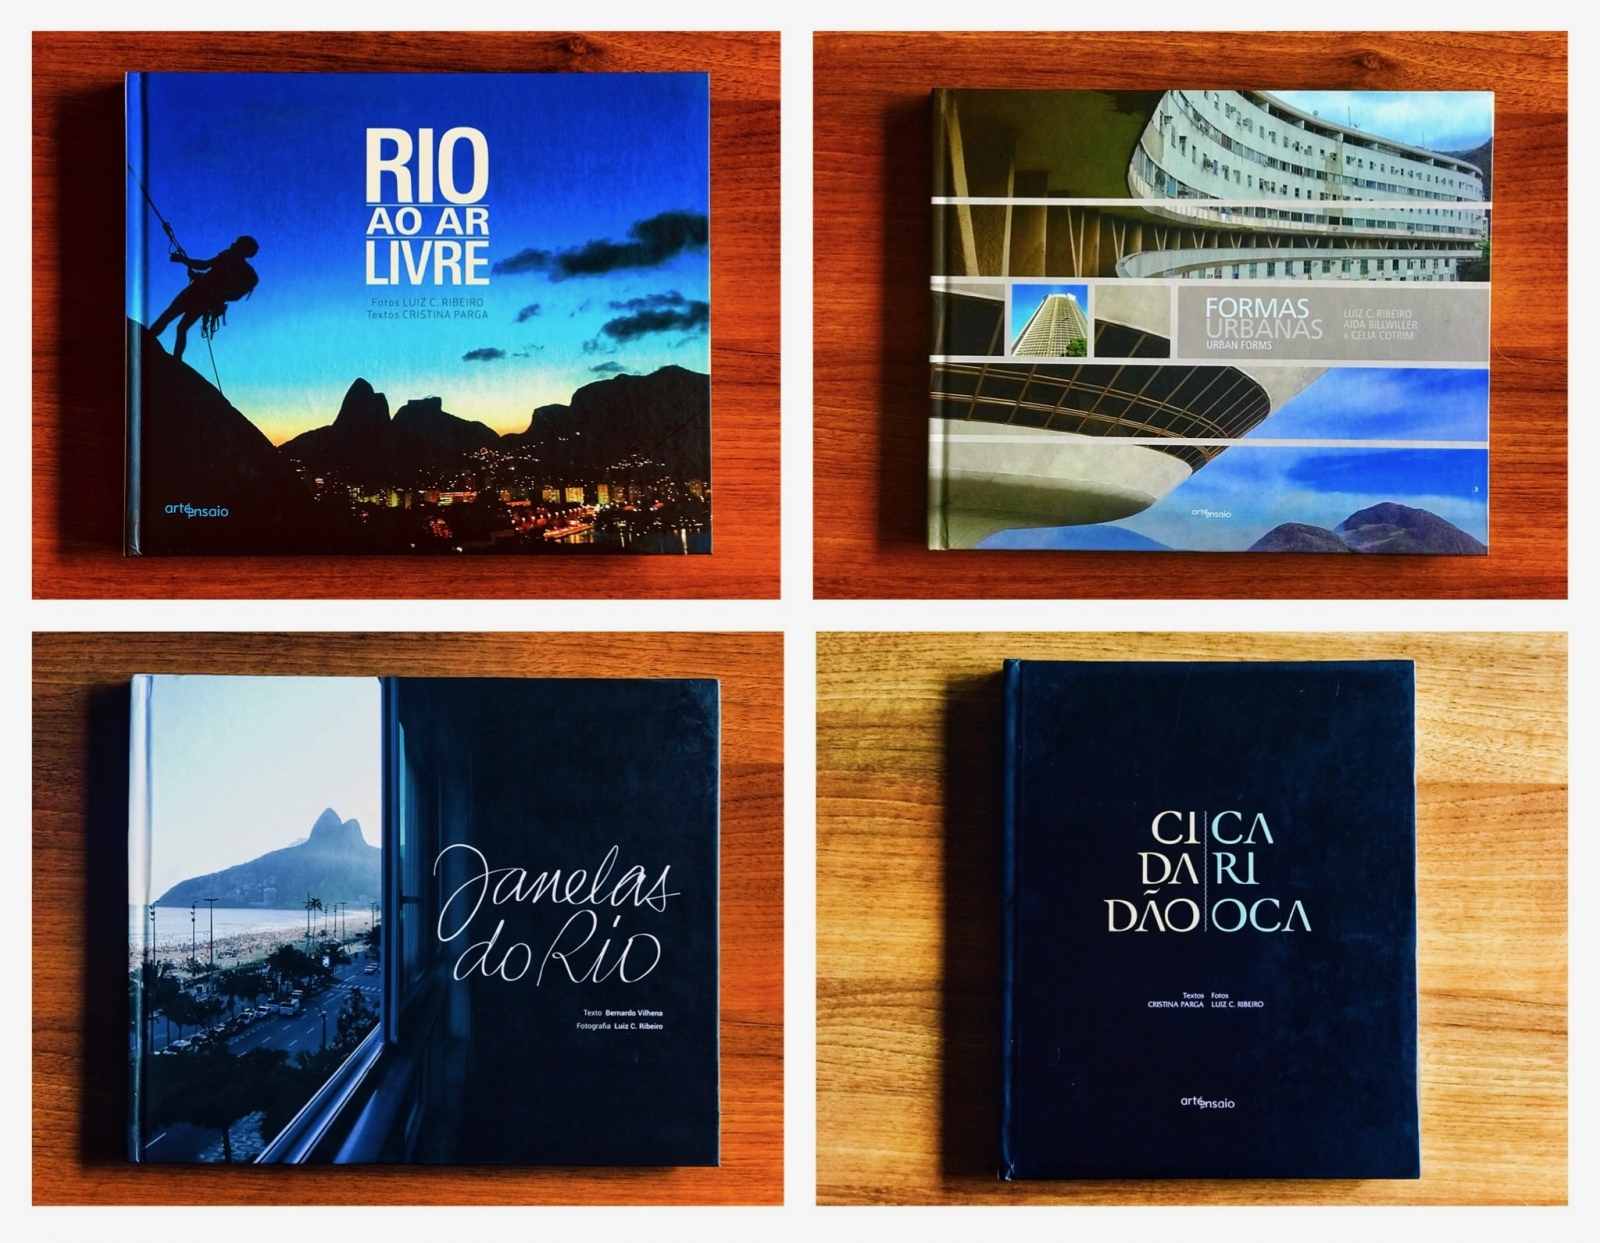 Luiz C. Ribeiro books published